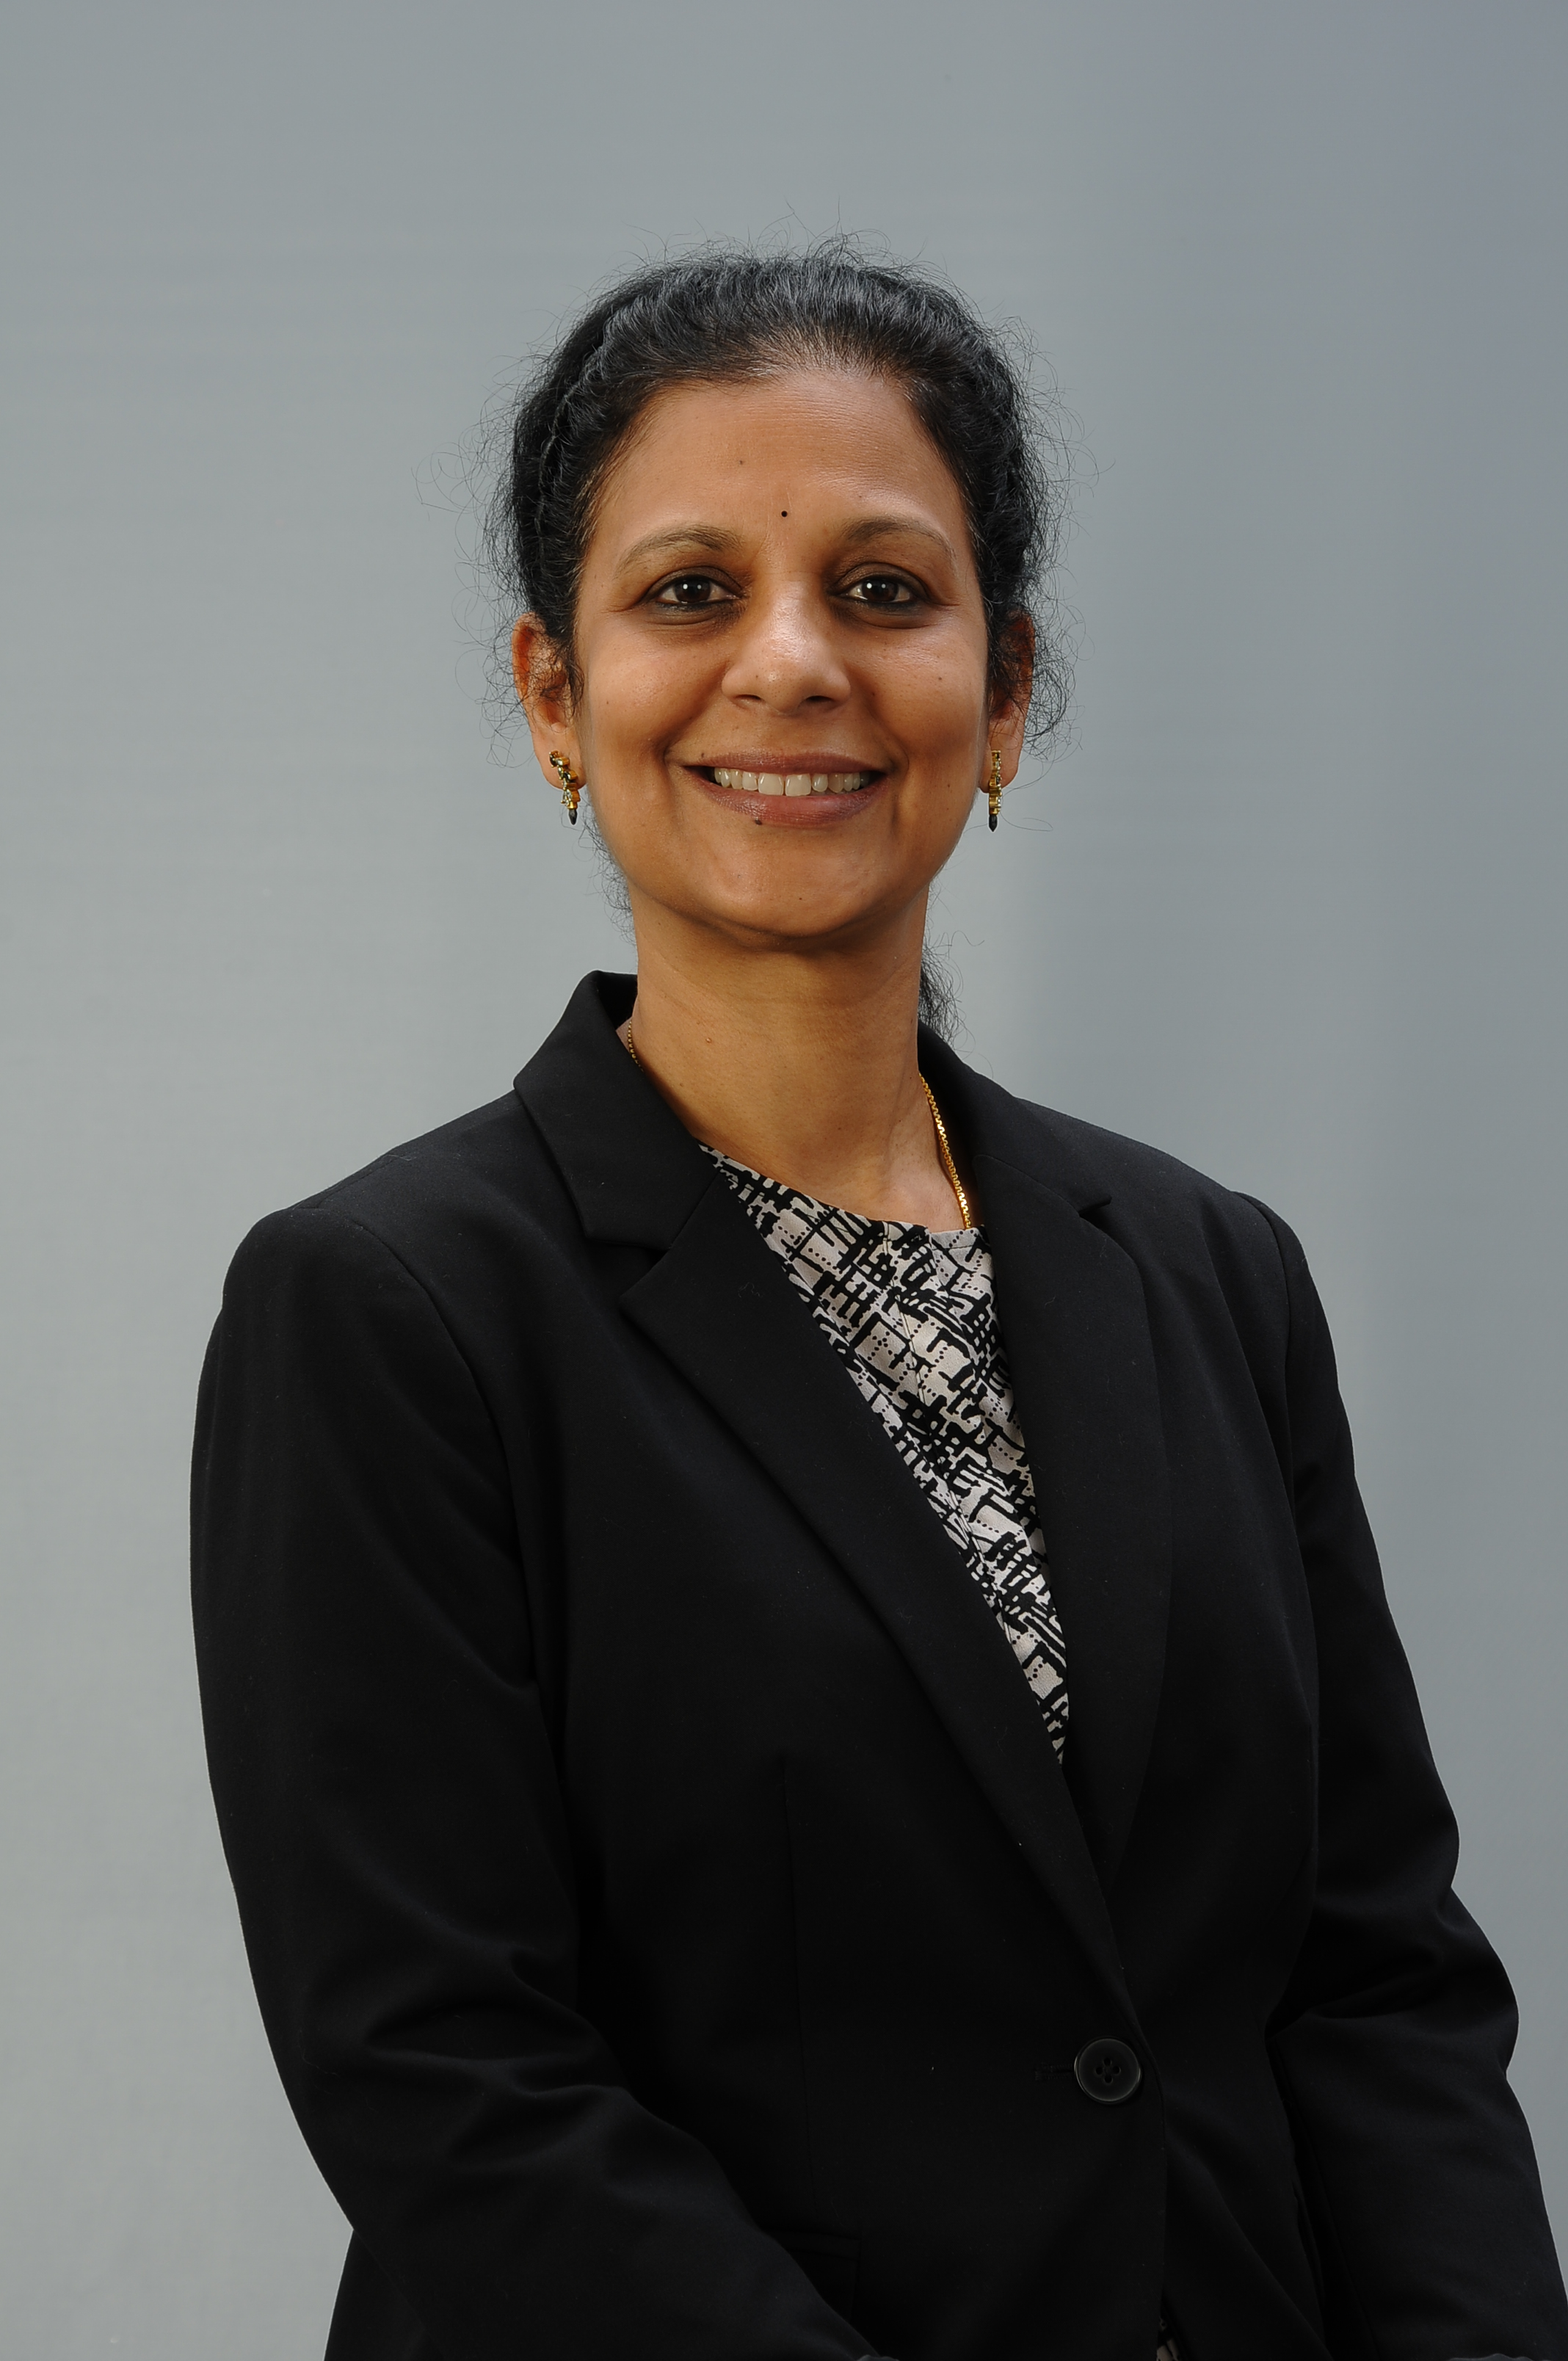 Profile photo of Sridevi Narayan-Sarathy